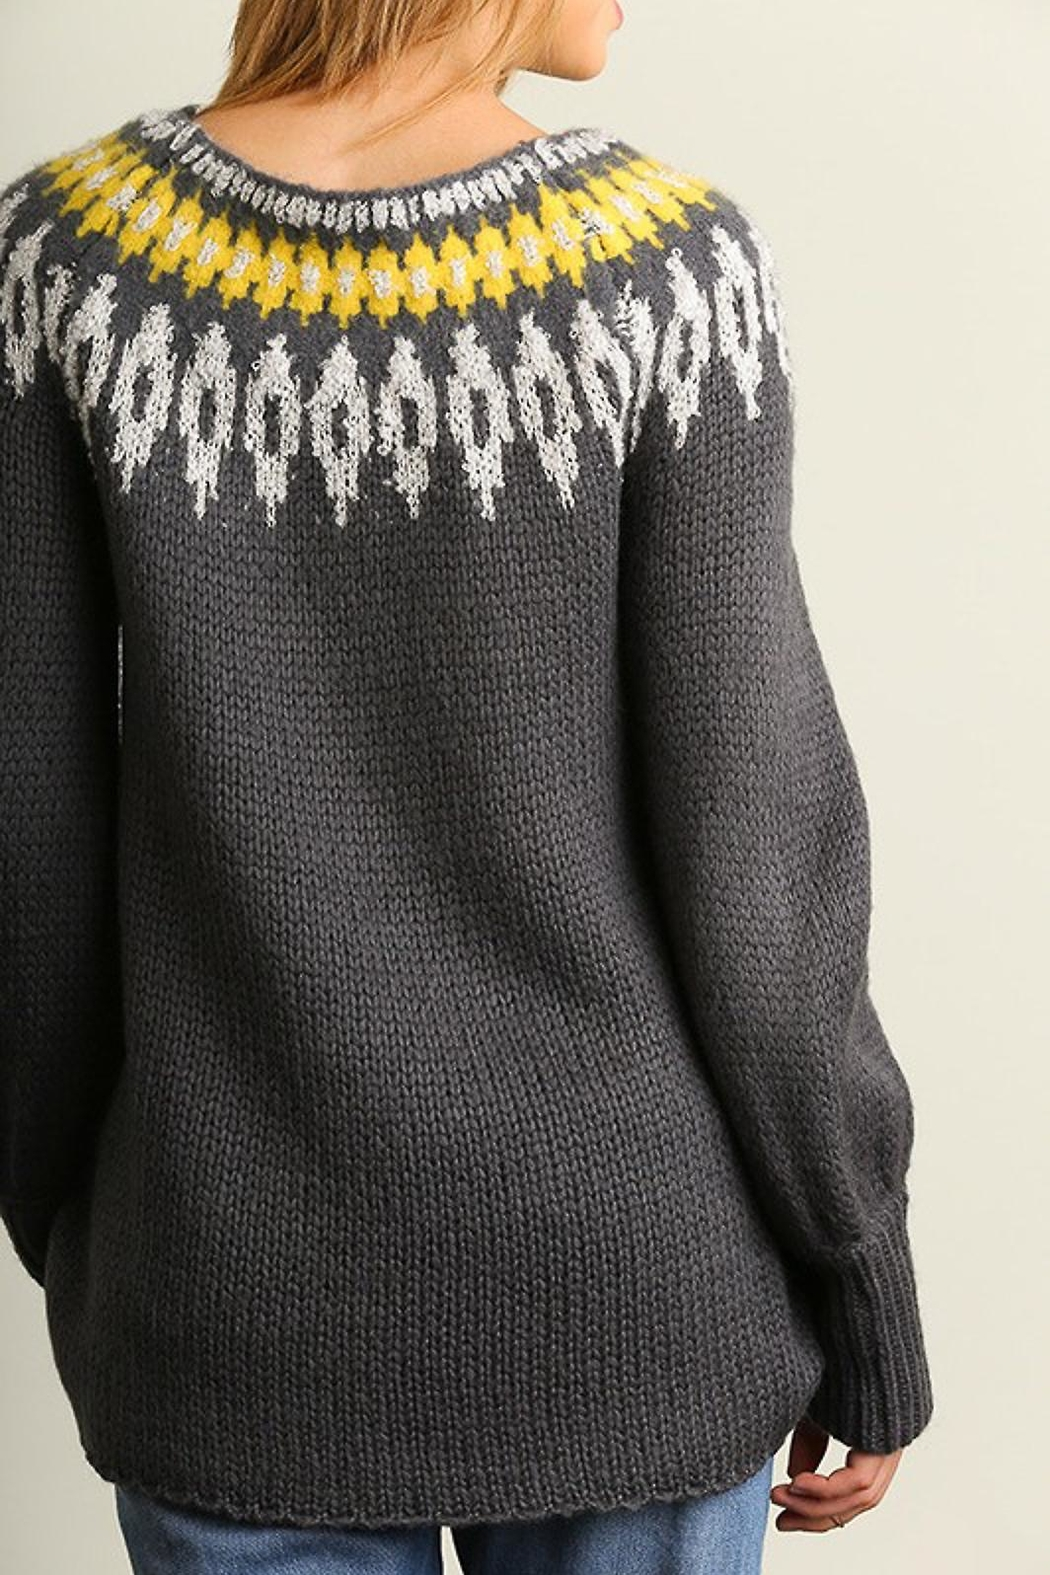 People Outfitter Snow Day Sweater - Back Cropped Image